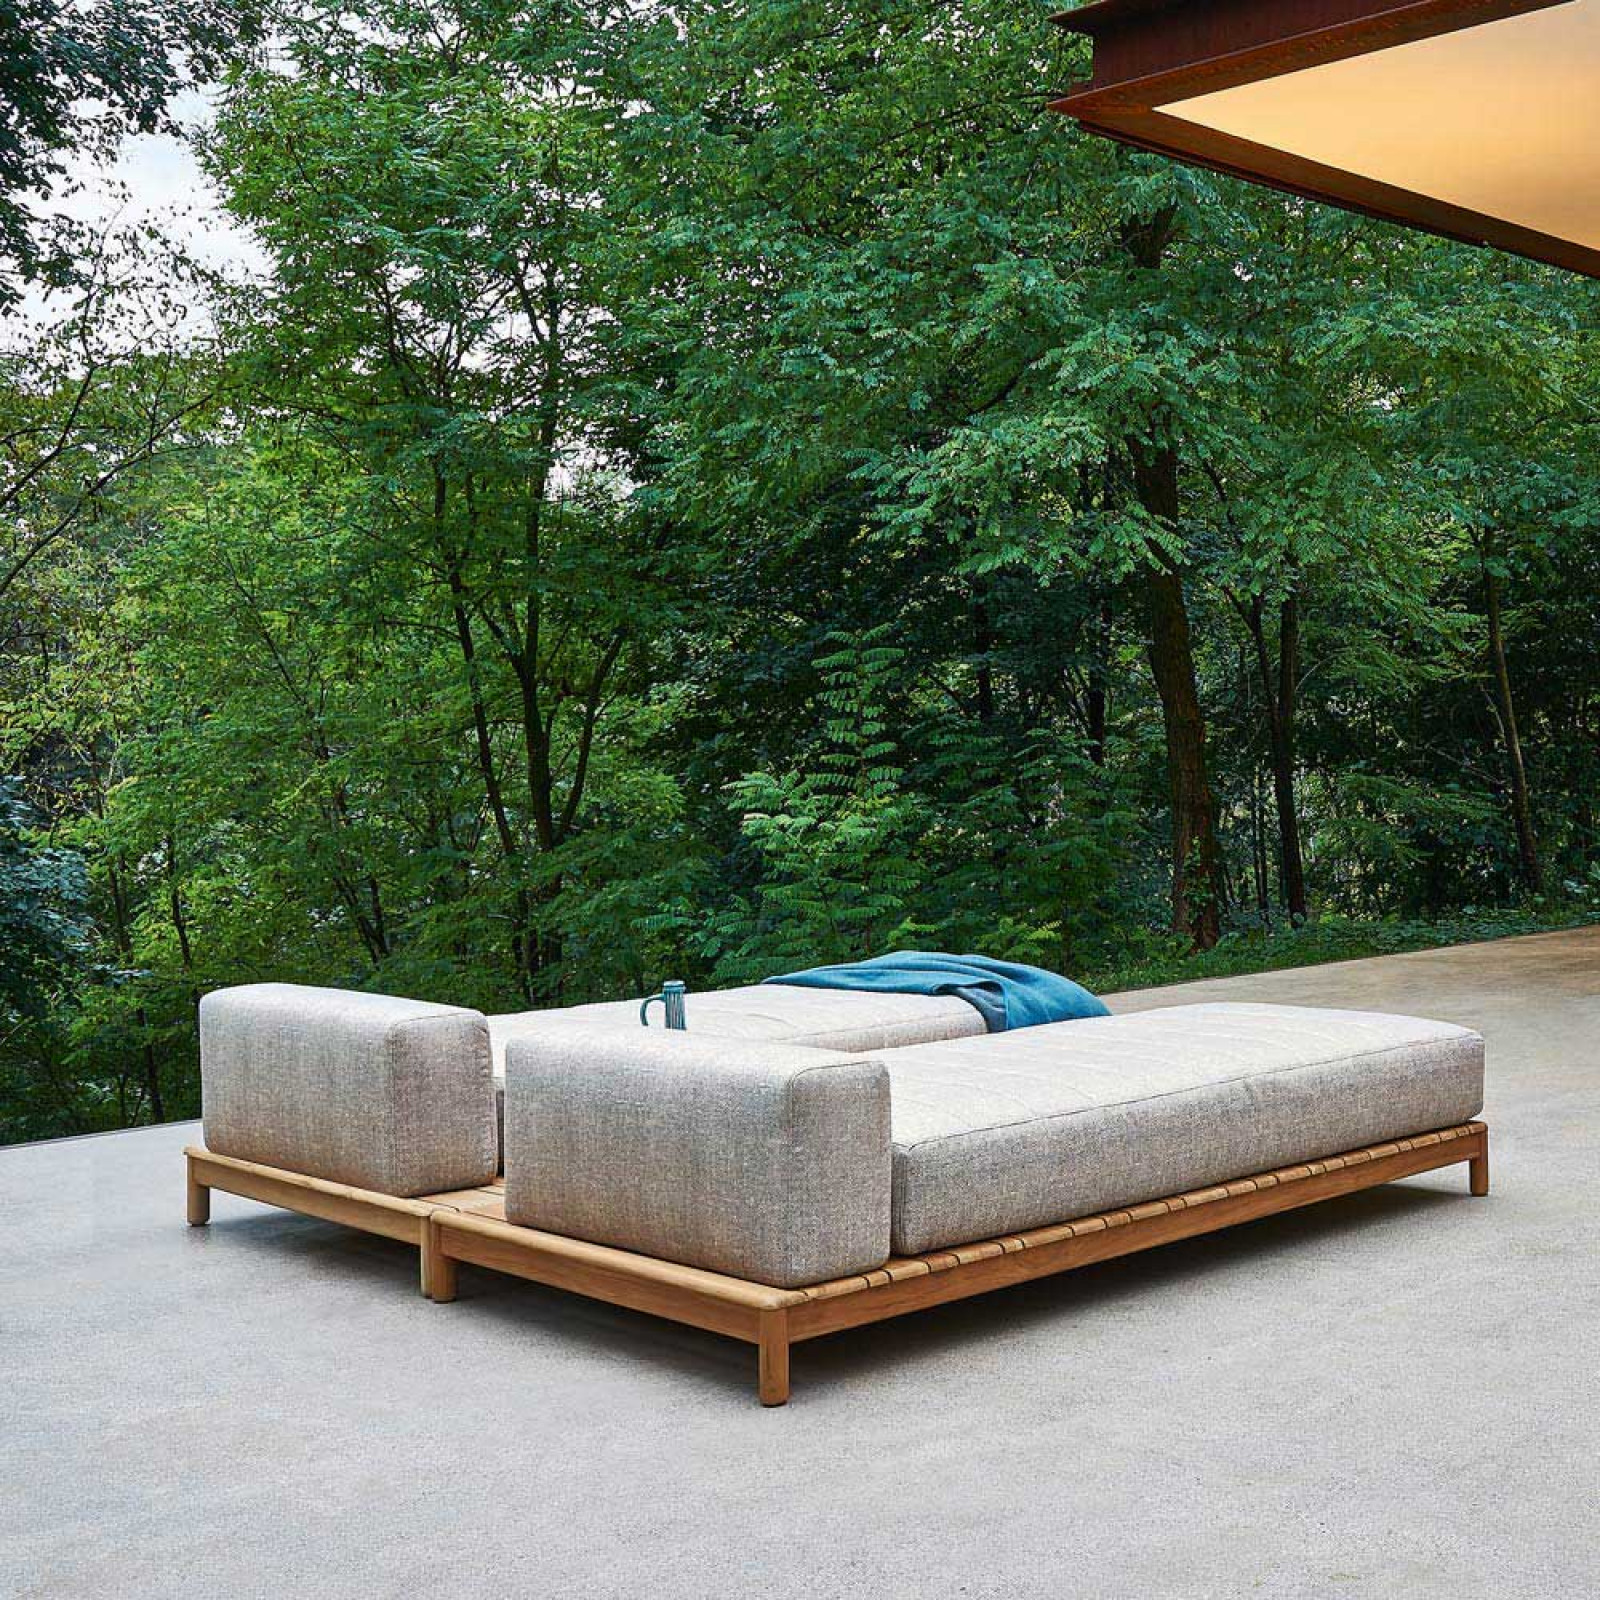 Varaschin Barcode Outdoor Doppel Daybed 180×180 cm mit Teakholzgestell